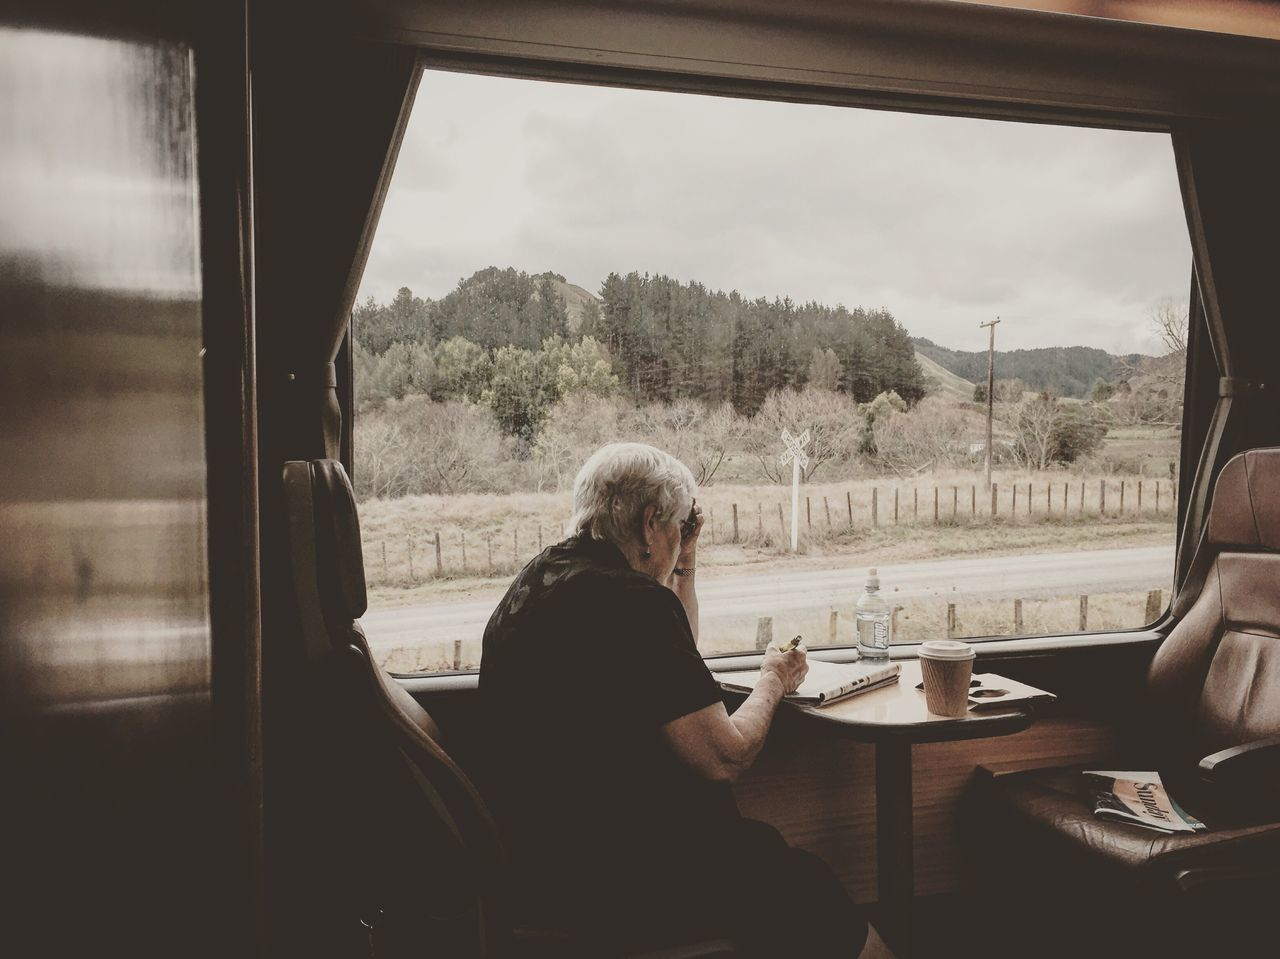 sitting, window, real people, senior adult, one person, table, transportation, senior women, indoors, leisure activity, train - vehicle, looking through window, mode of transport, casual clothing, tree, lifestyles, day, bus, sky, vehicle seat, women, adult, people